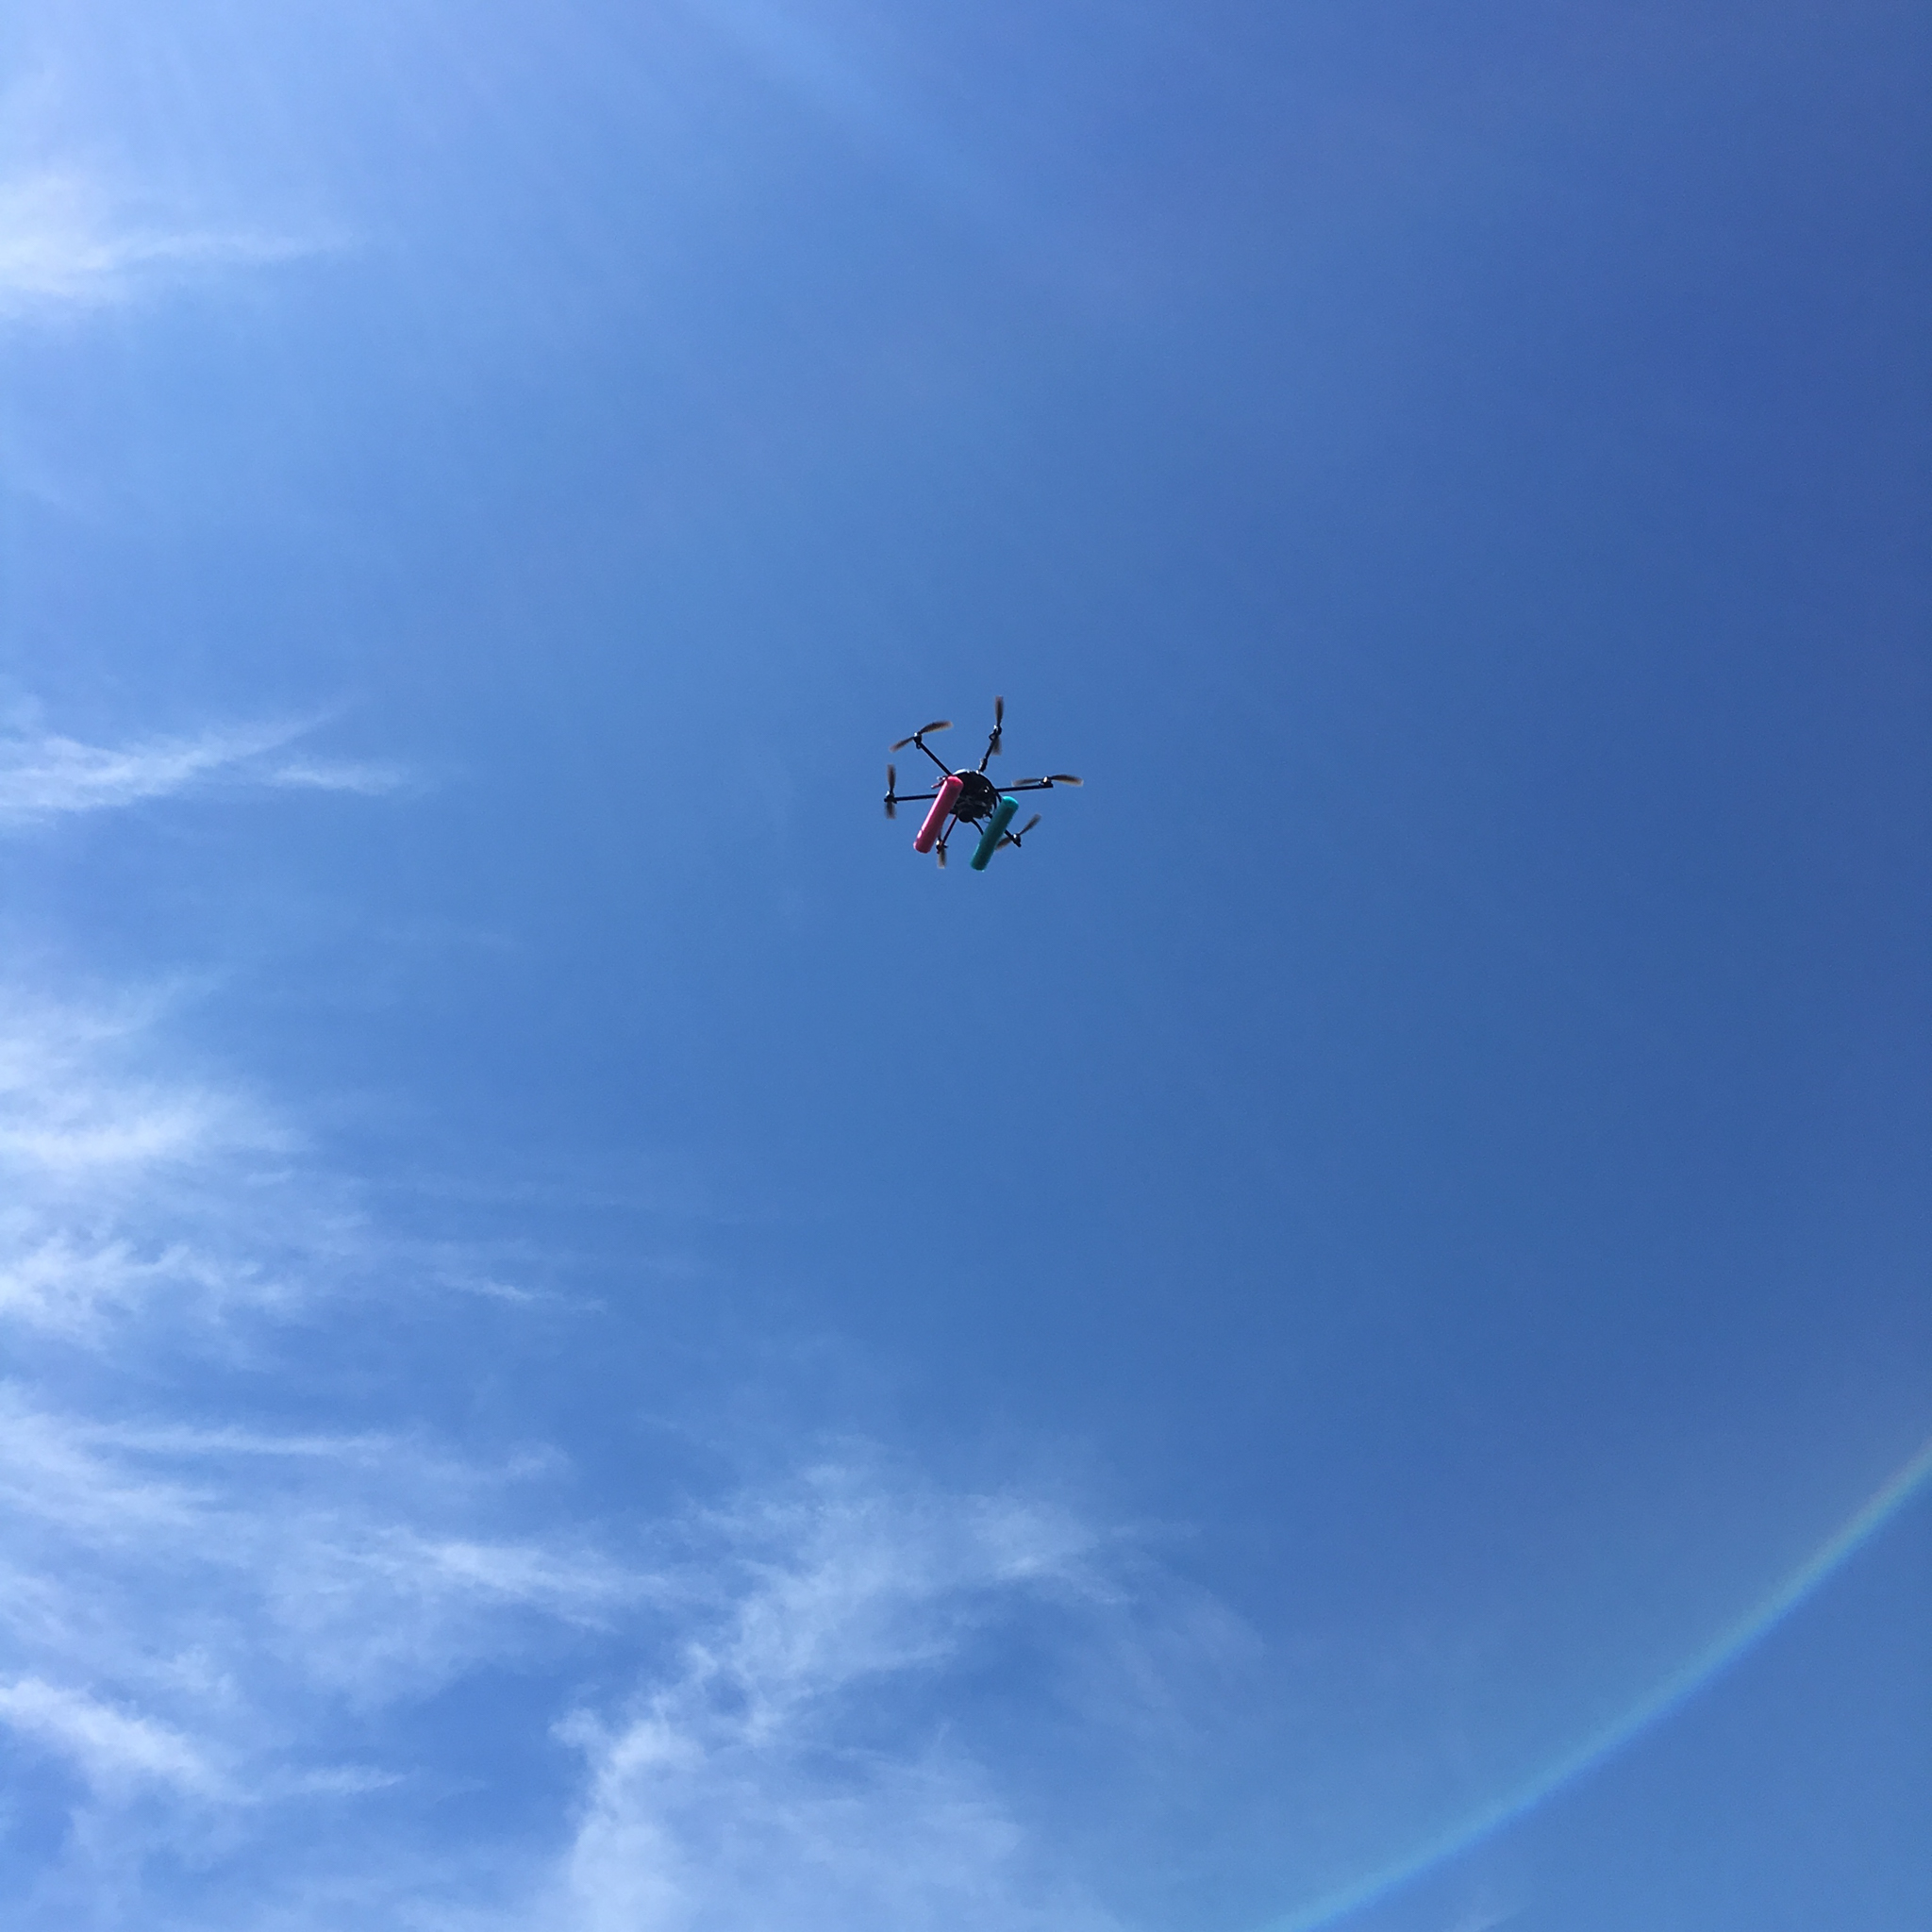 The NOAA drone (Ginger) quickly gains altitude above Woods Hole, Massachusetts. Photo by Nicola Twilley